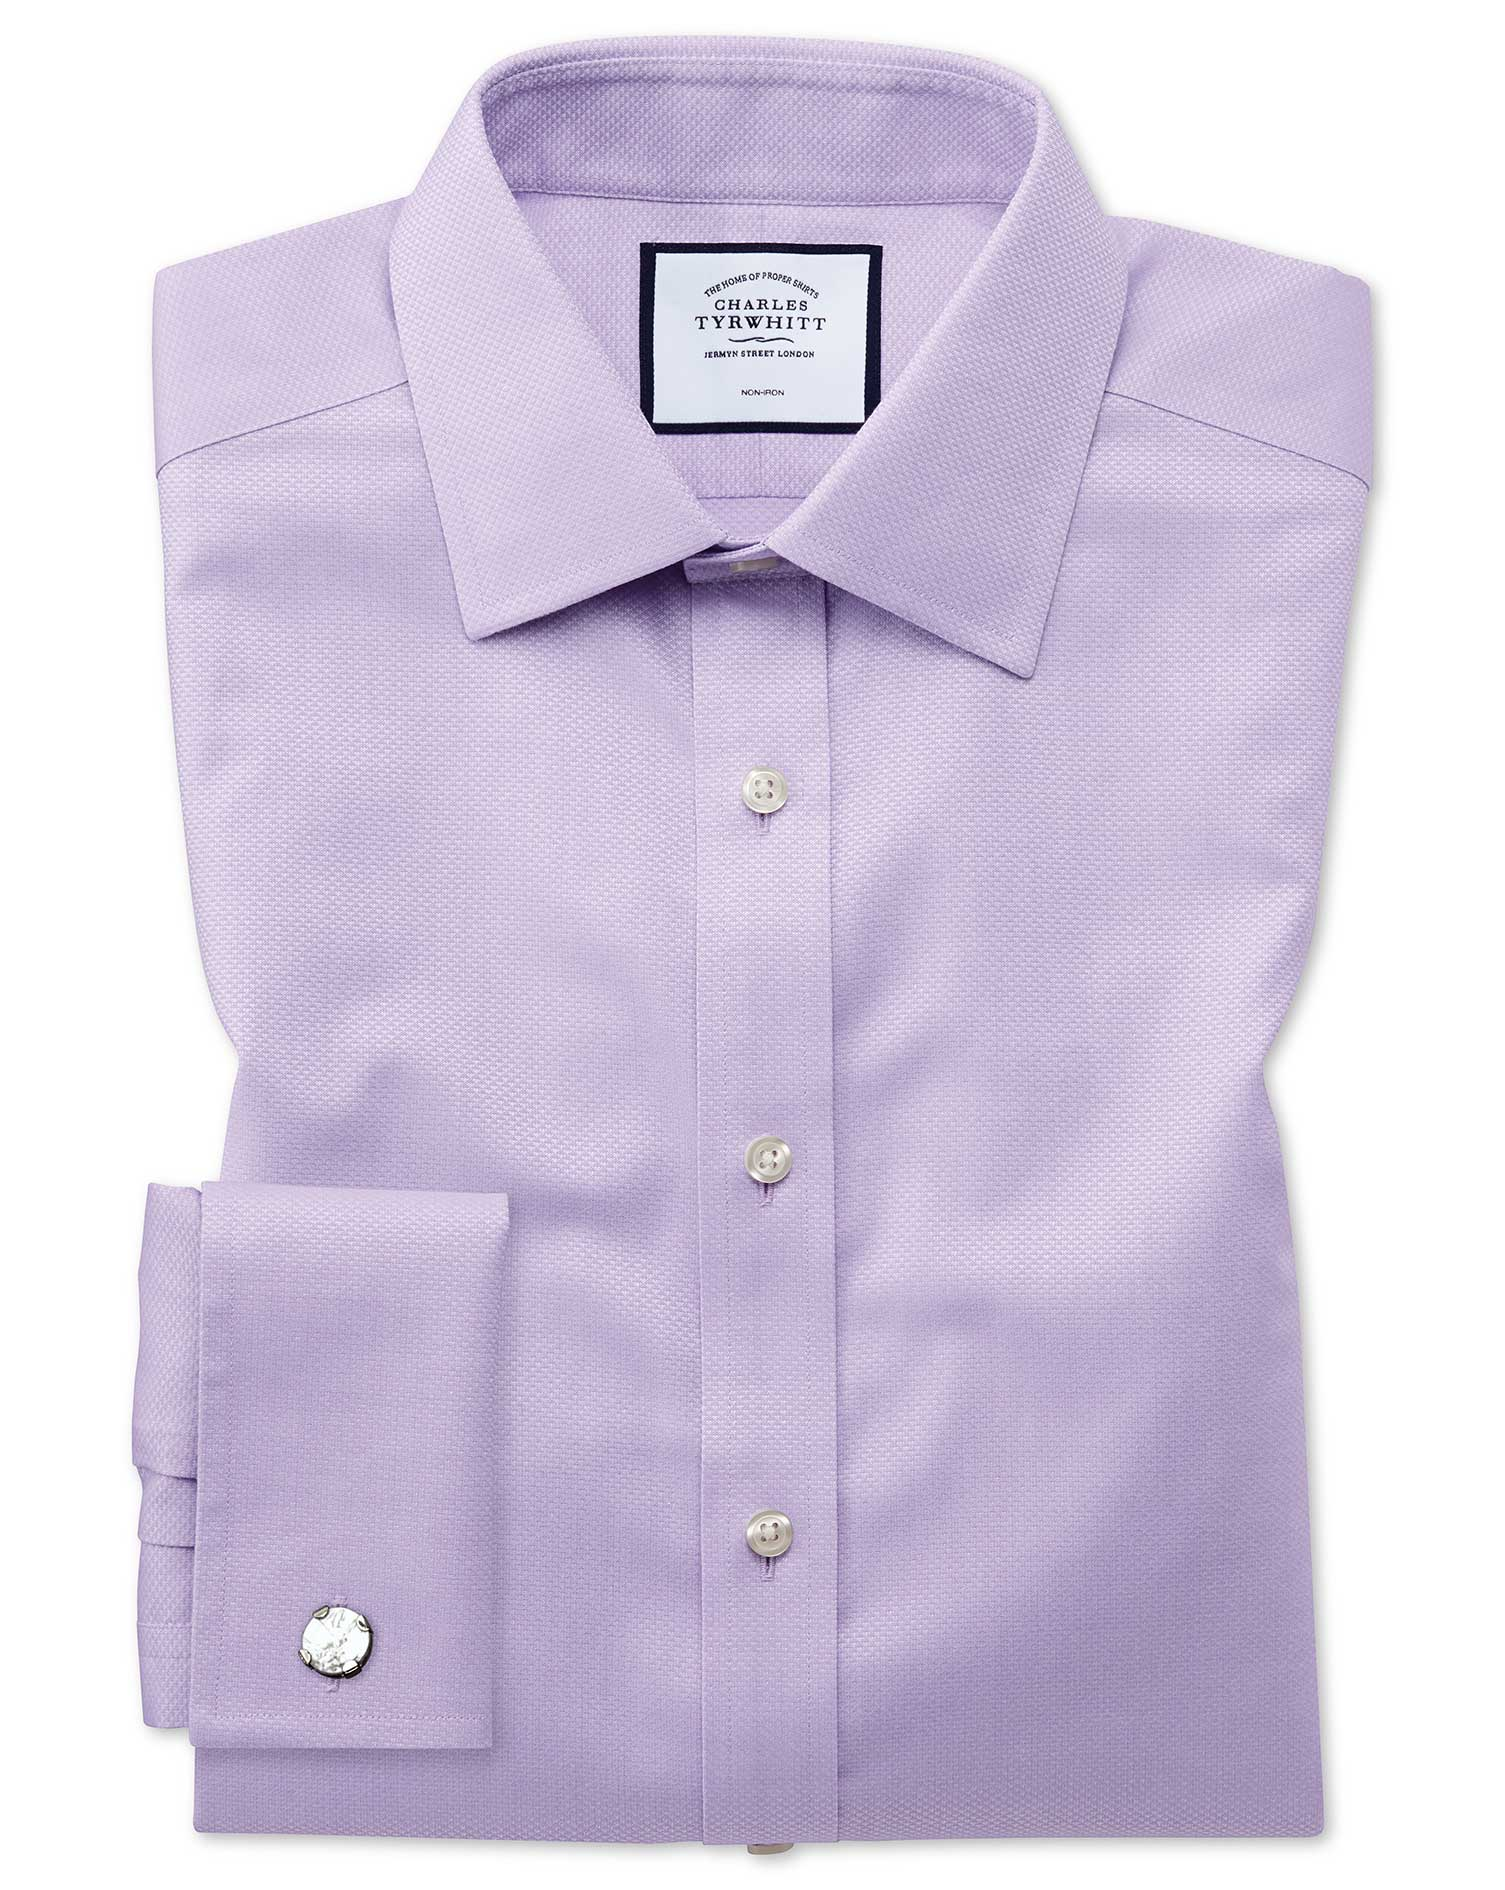 Extra Slim Fit Non-Iron Lilac Triangle Weave Cotton Formal Shirt Double Cuff Size 17/35 by Charles T